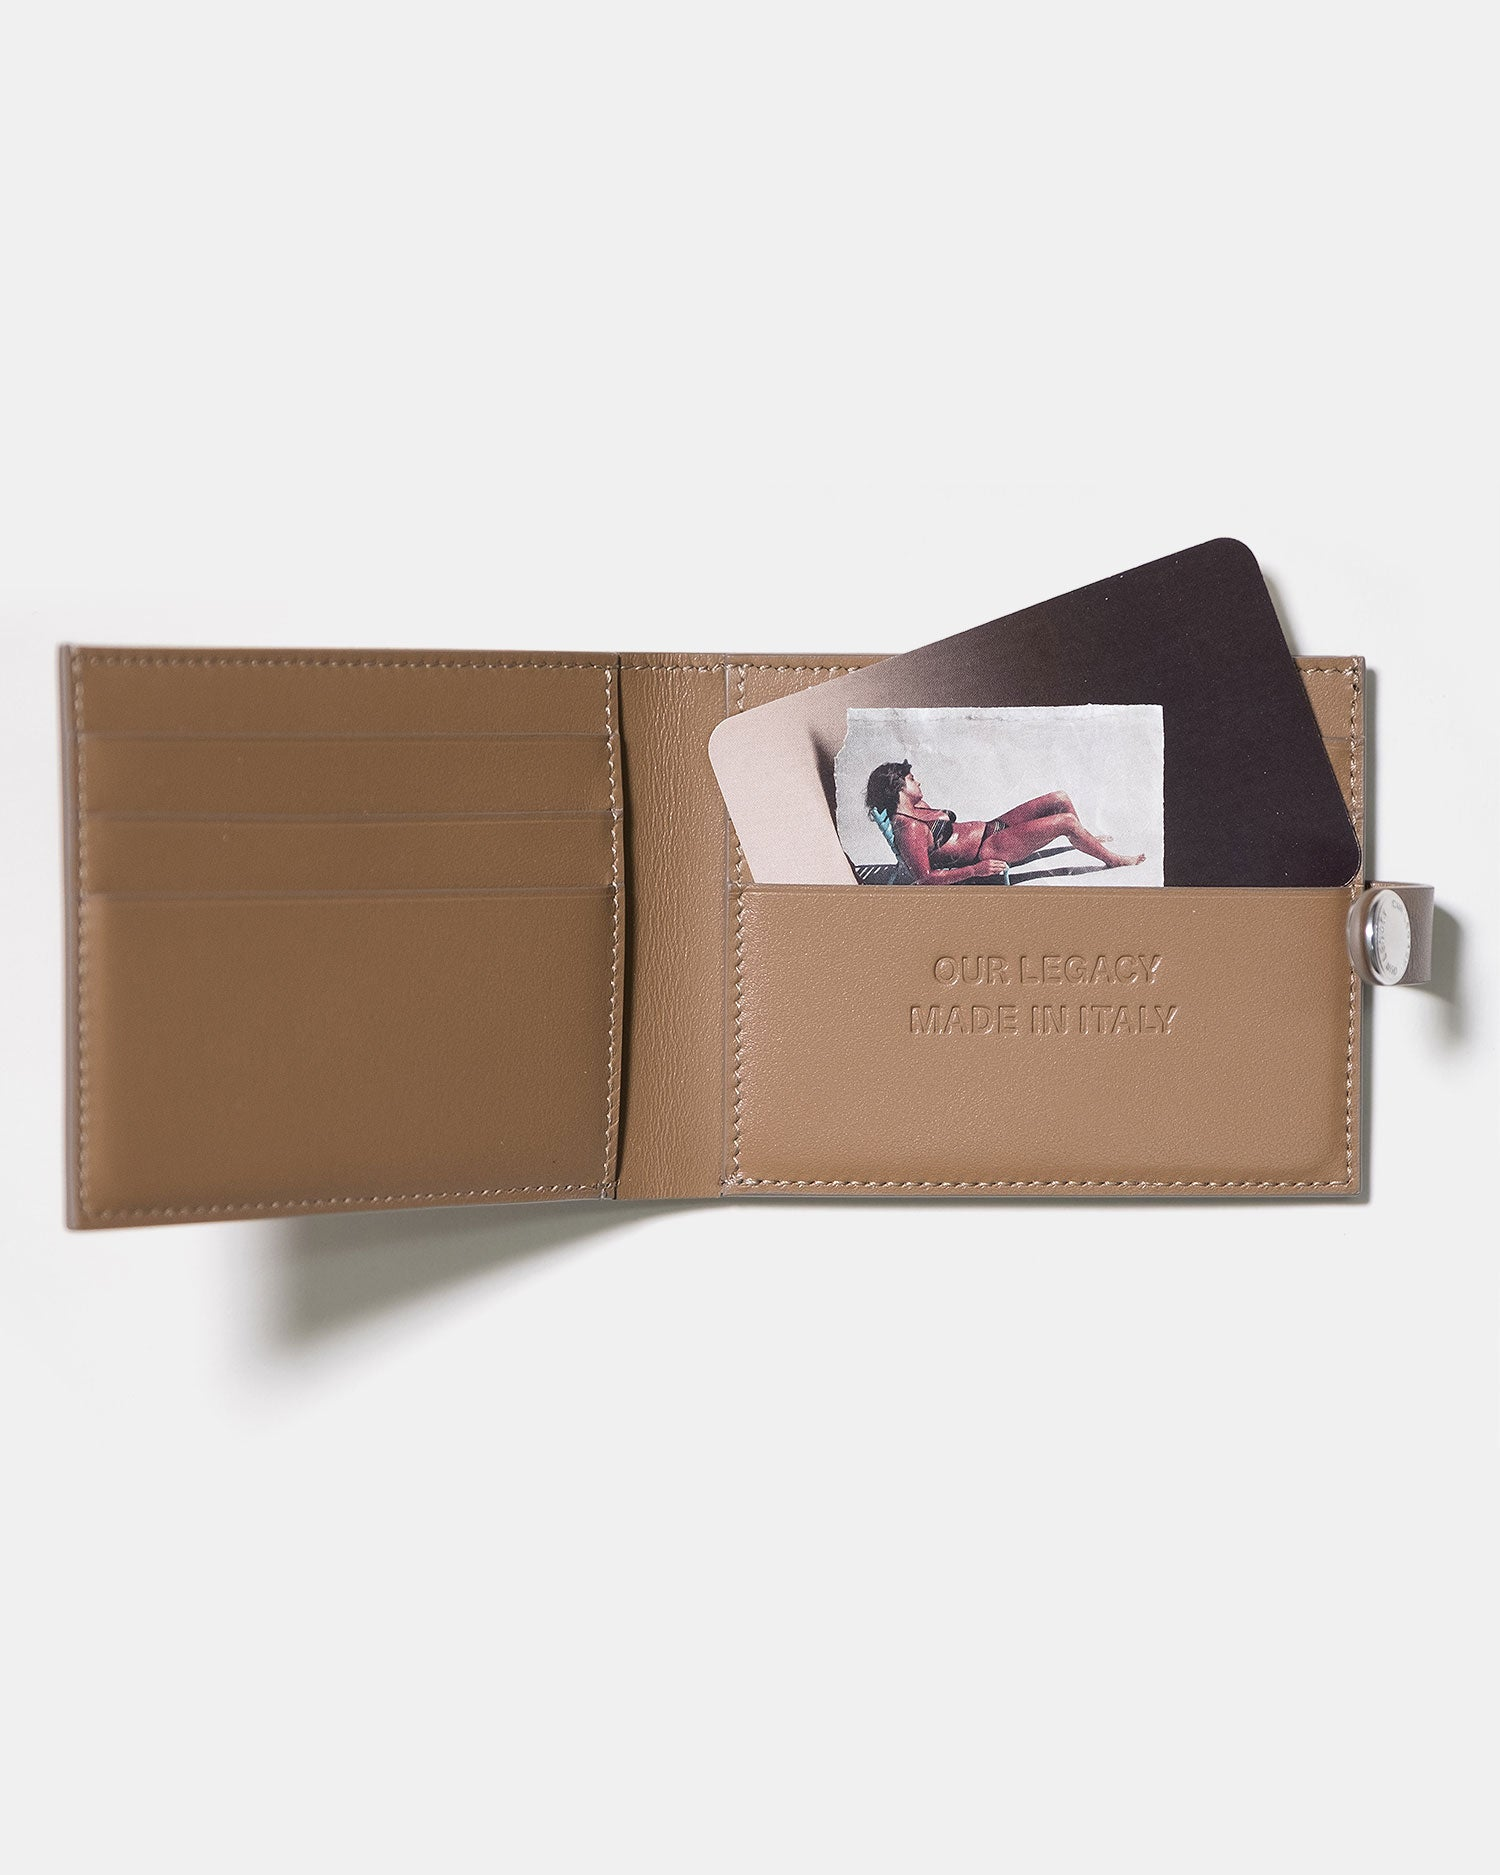 Our Legacy Snap Wallet Mushroom